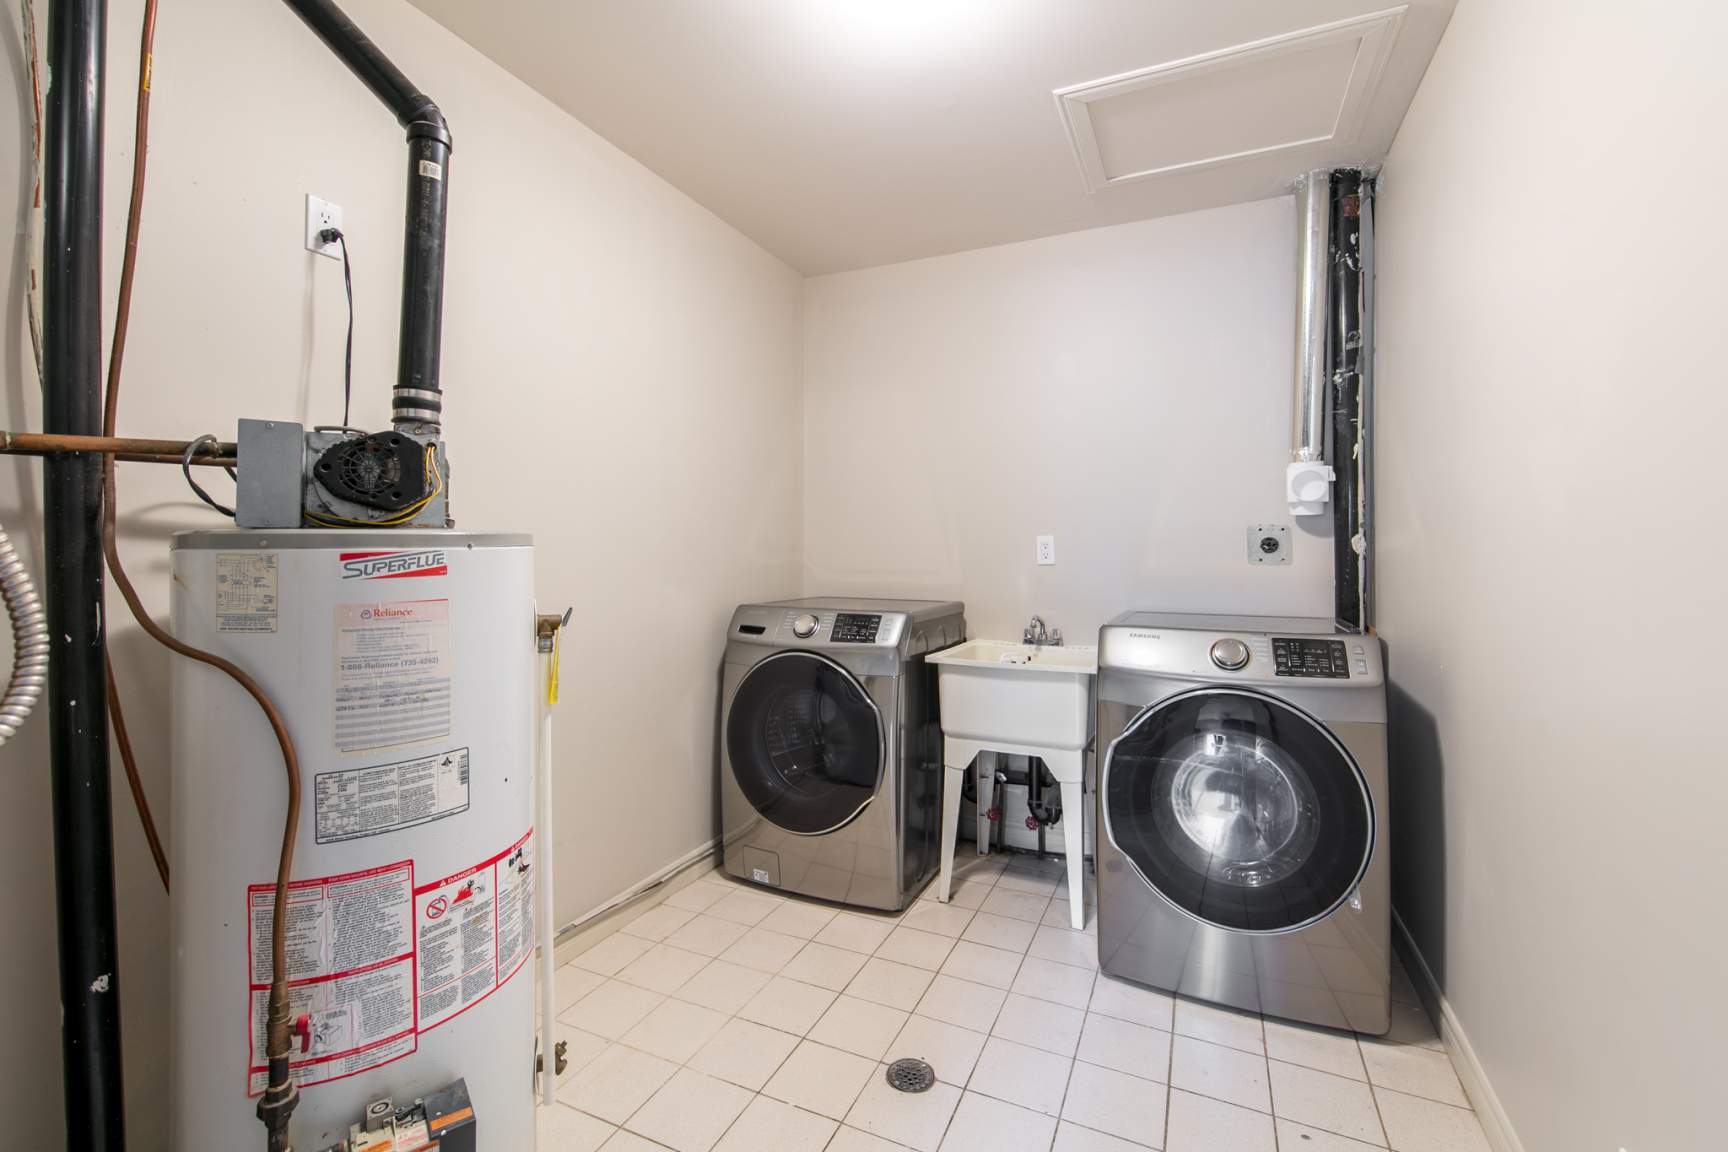 Laundry and storage room. New front load washer and dryer.